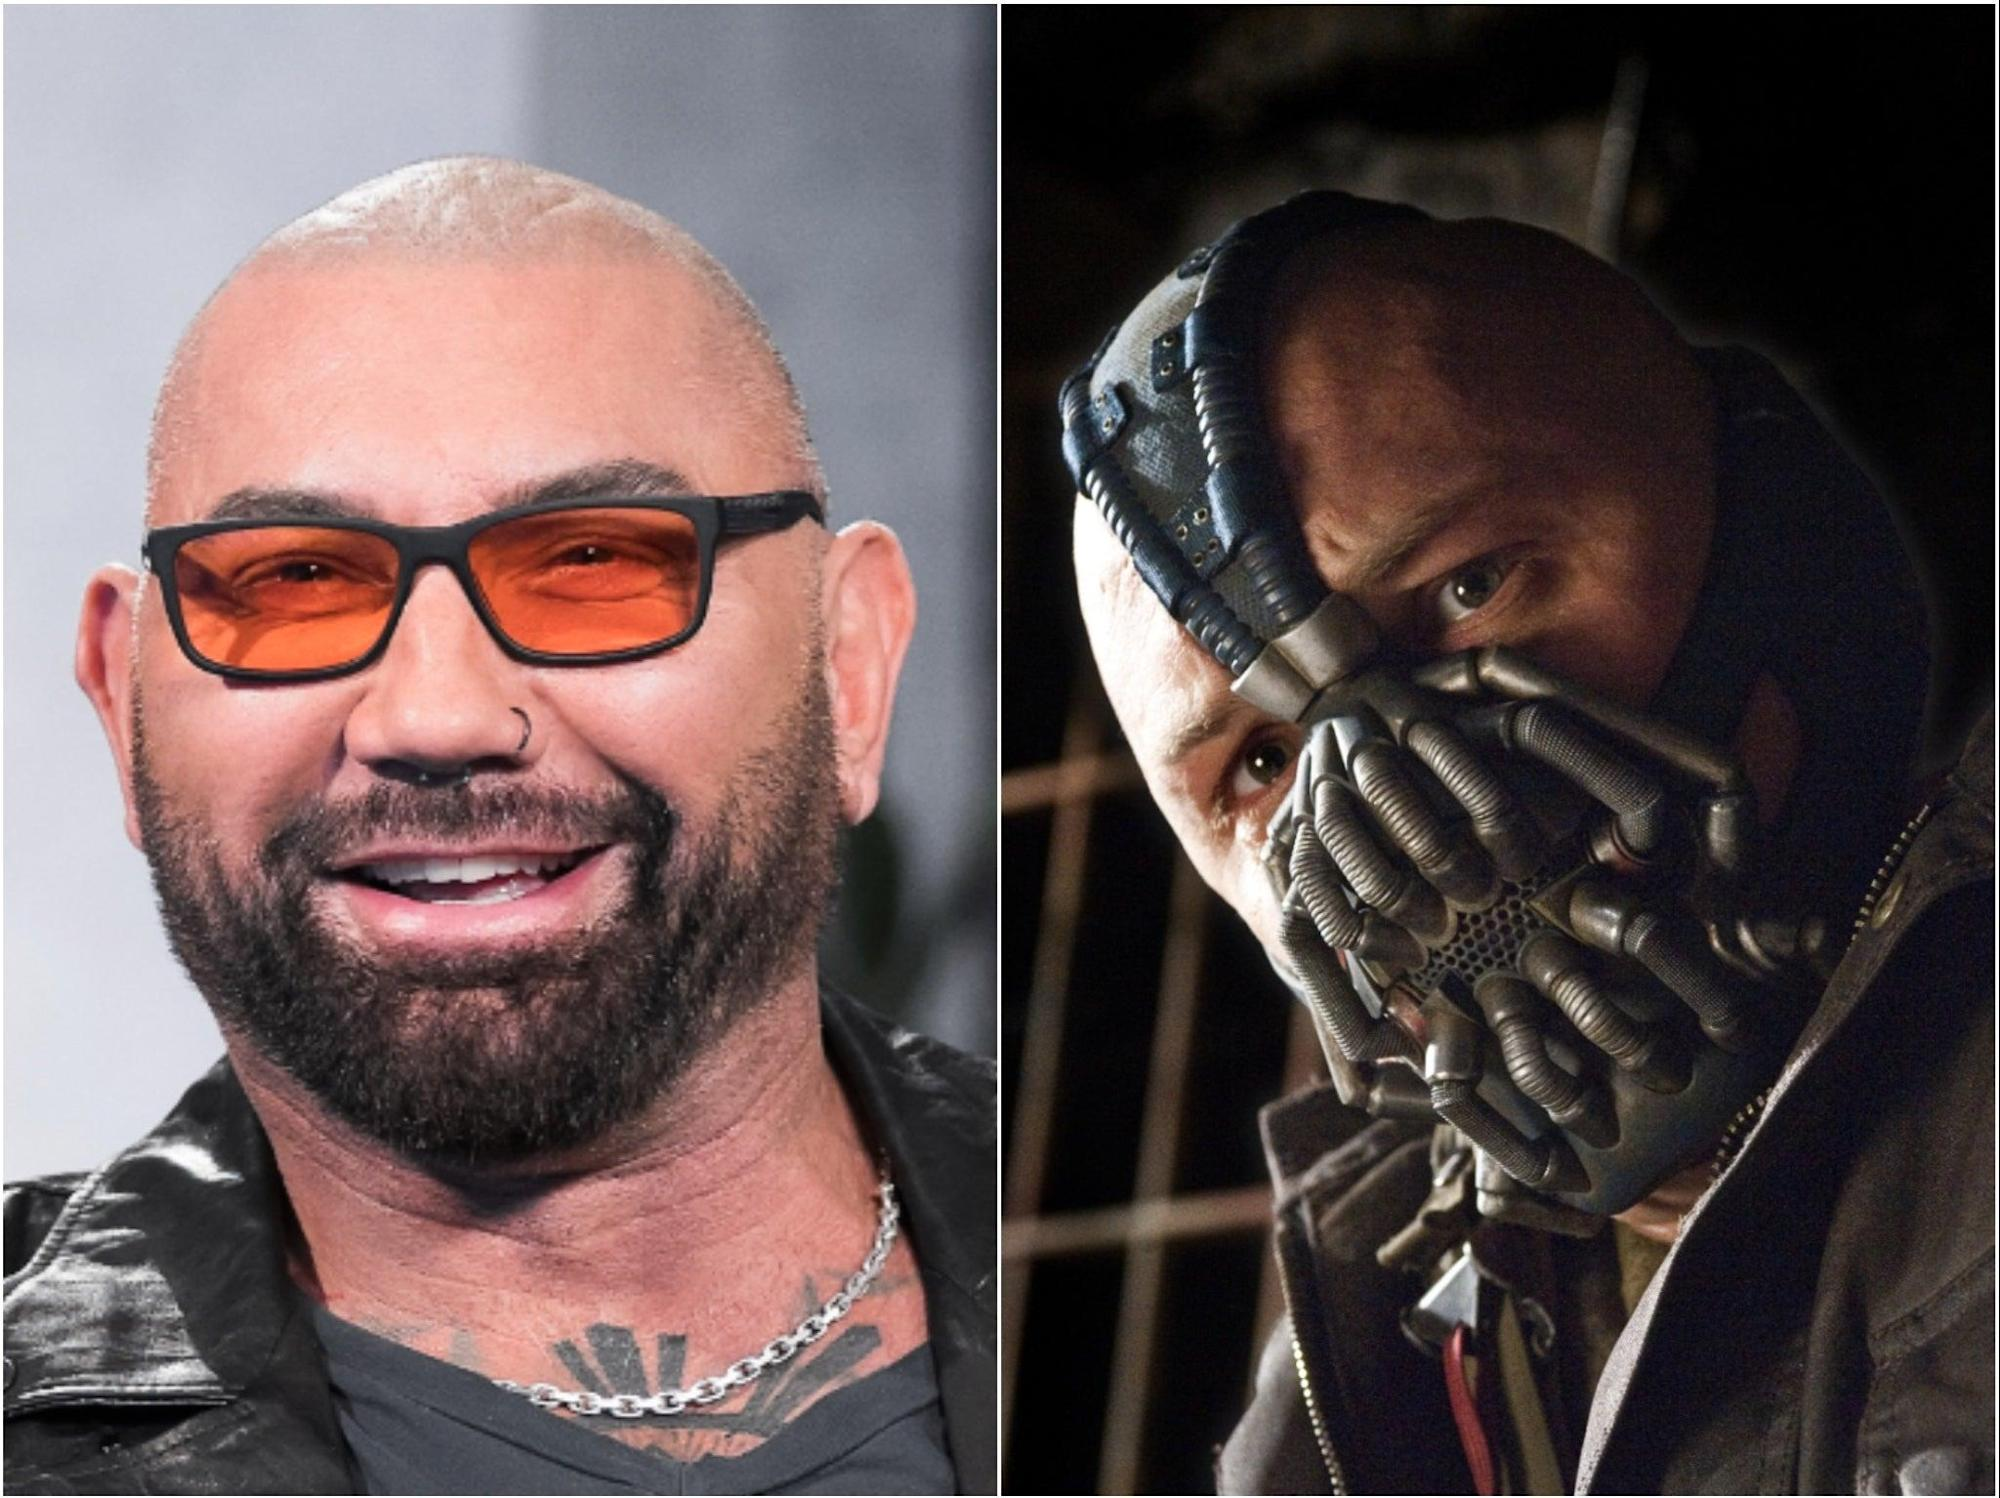 Dave Bautista describes failed pitch to play Batman villain Bane: 'They had a giggle and showed me the exit'